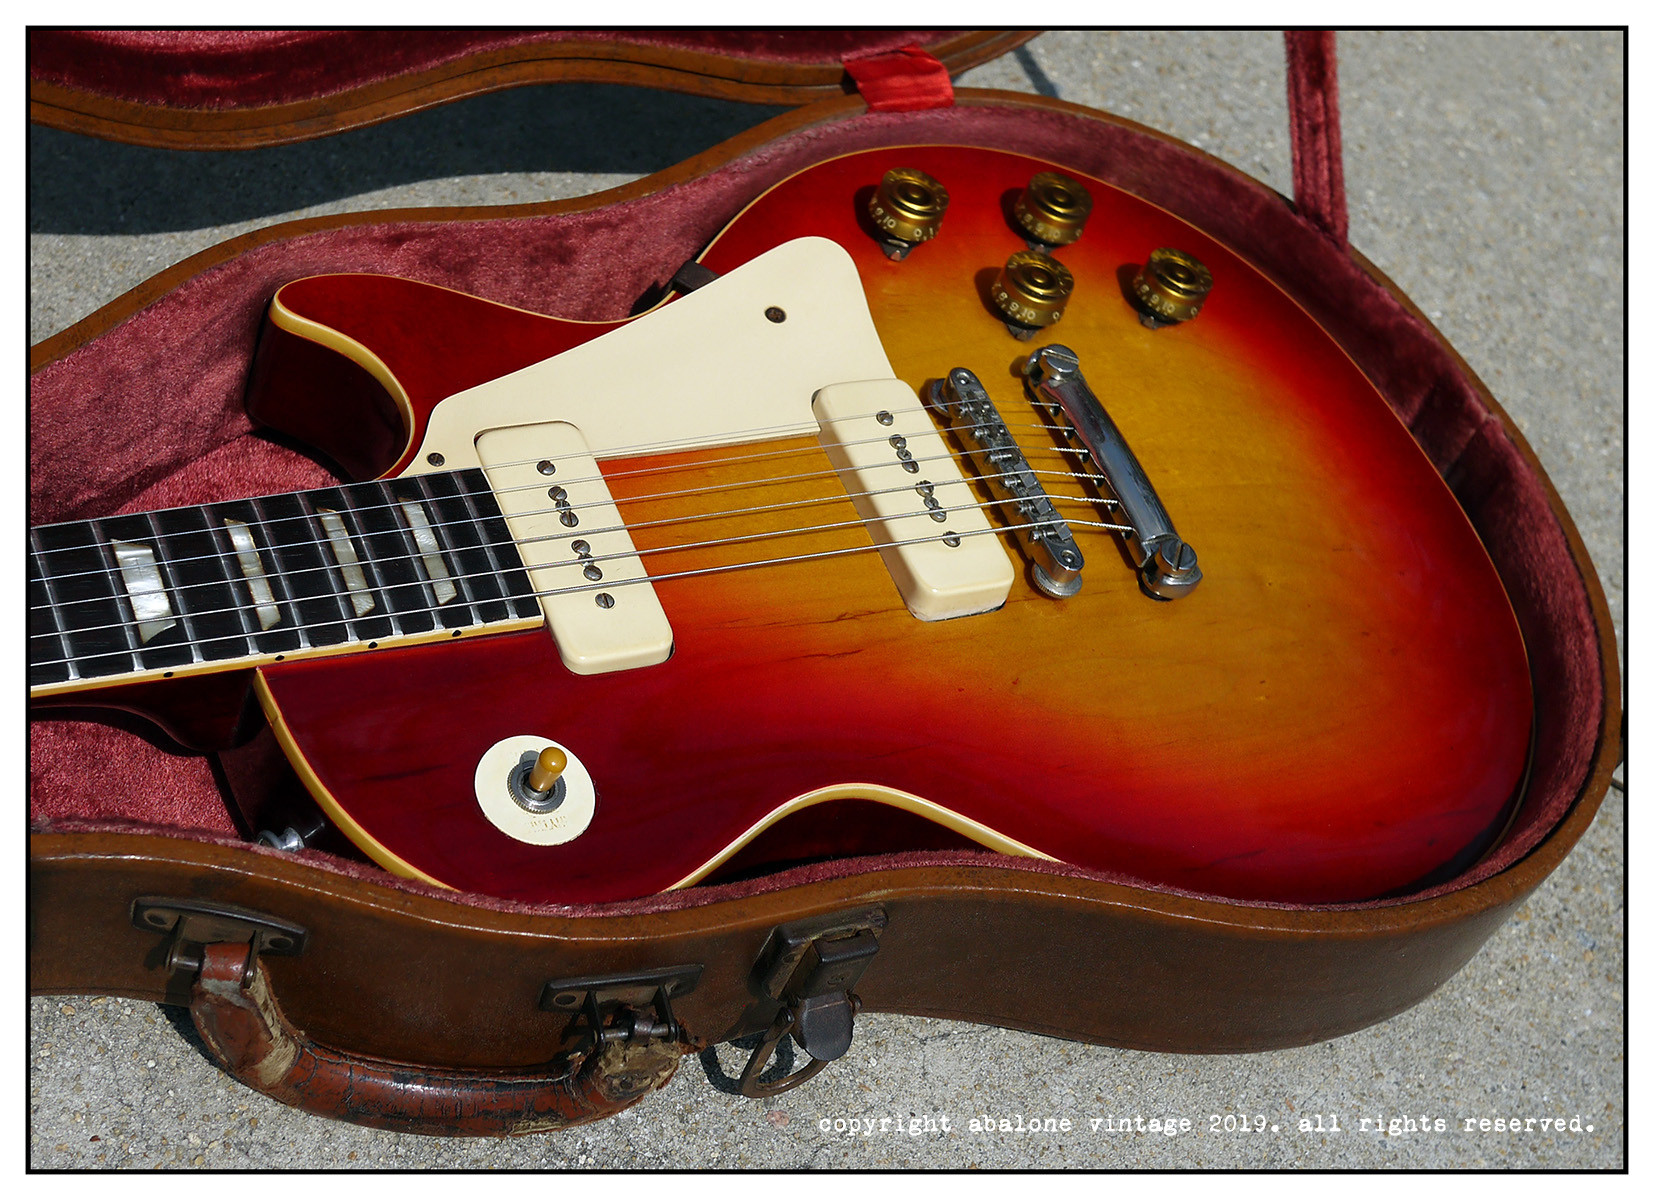 1953 Gibson Les Paul Standard guitar factory 1960 conversion.